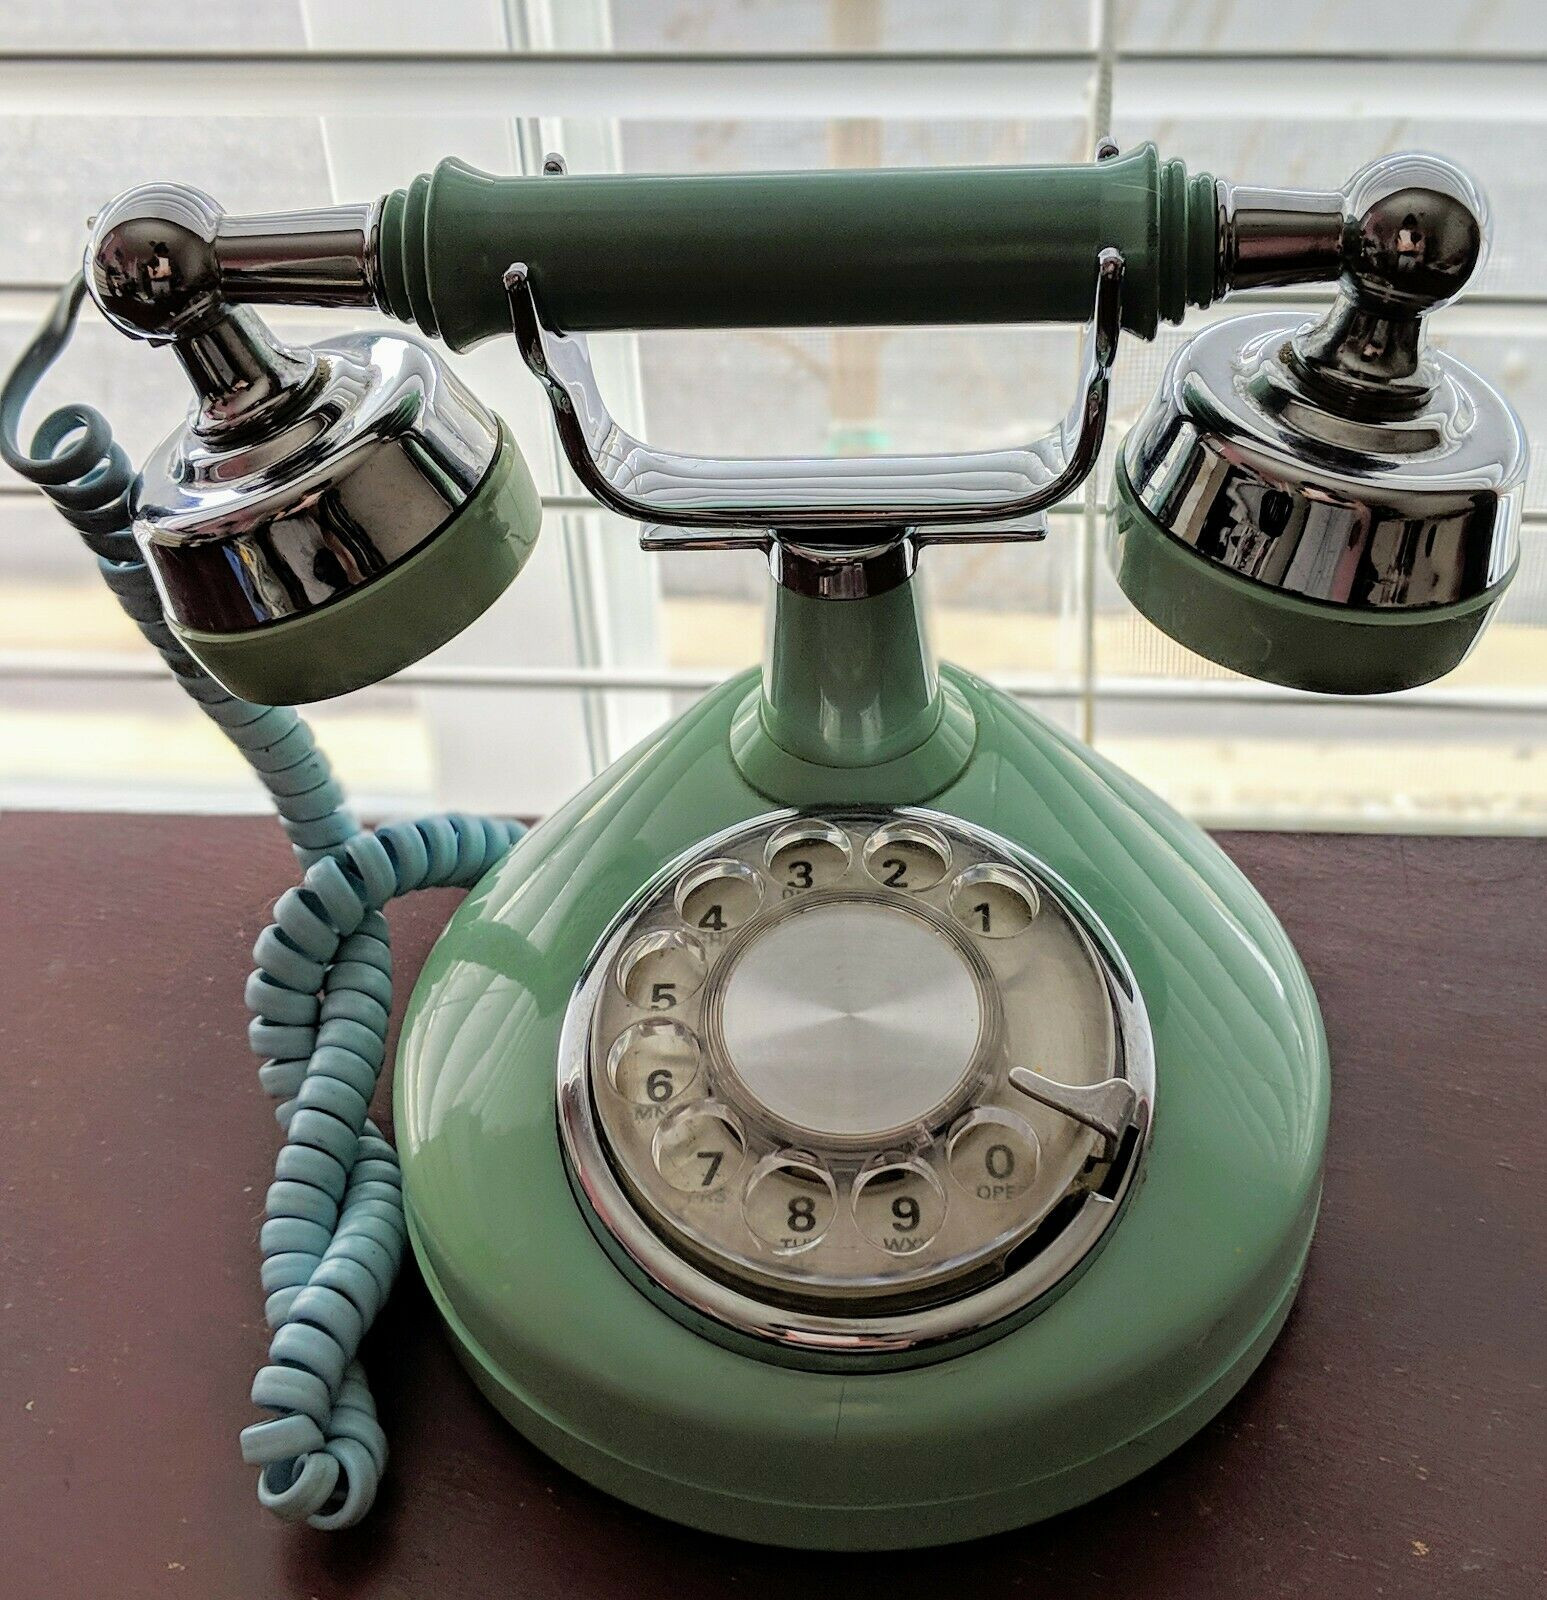 Inspirational Mint Green Vintage Rotary Dial Telephone Corded Antique Vintage Rotary Wall Phone Of Wonderful 46 Pictures Vintage Rotary Wall Phone